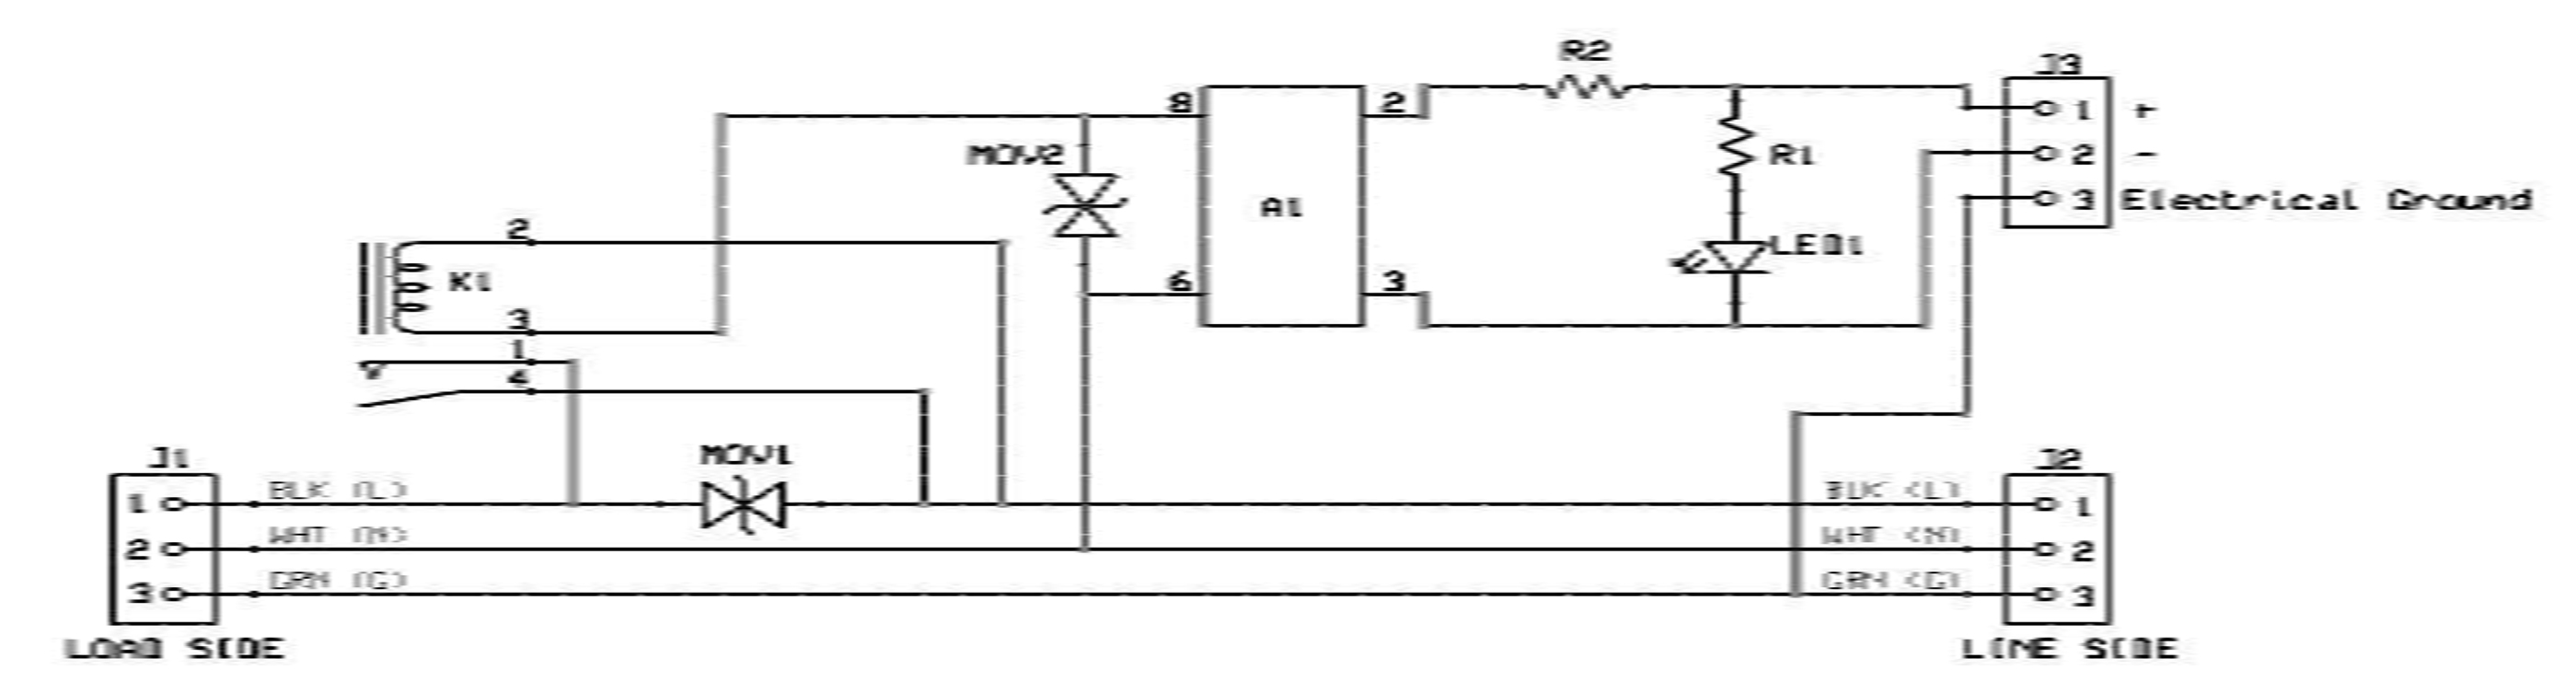 Drivers Relays And Solid State Mbed Light Operated Switch Circuit Power Tail Ii Schematic